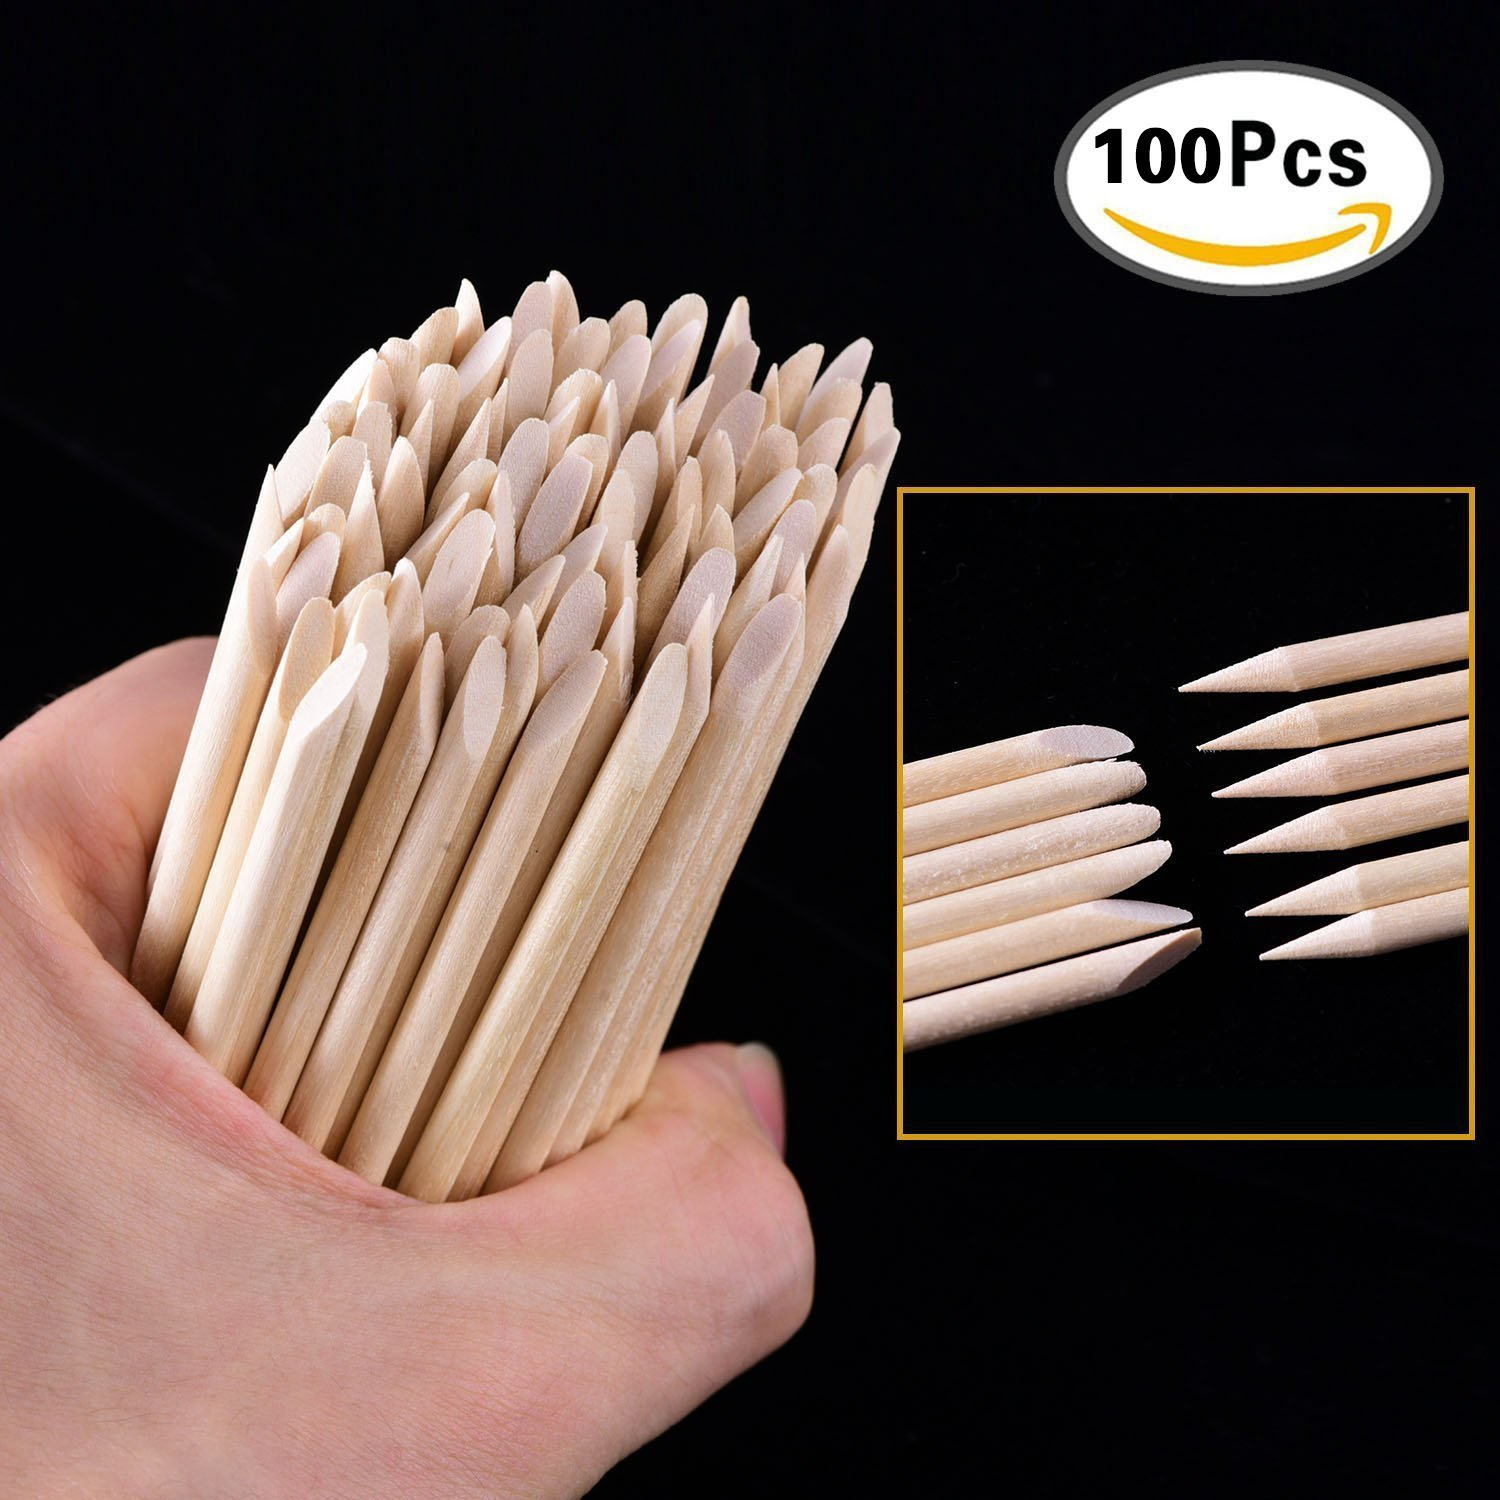 100 Pcs Nail Cuticle Pusher Nail Art Orange Wood Stick Sticks Cuticle Pusher Remover Manicure BTYMS